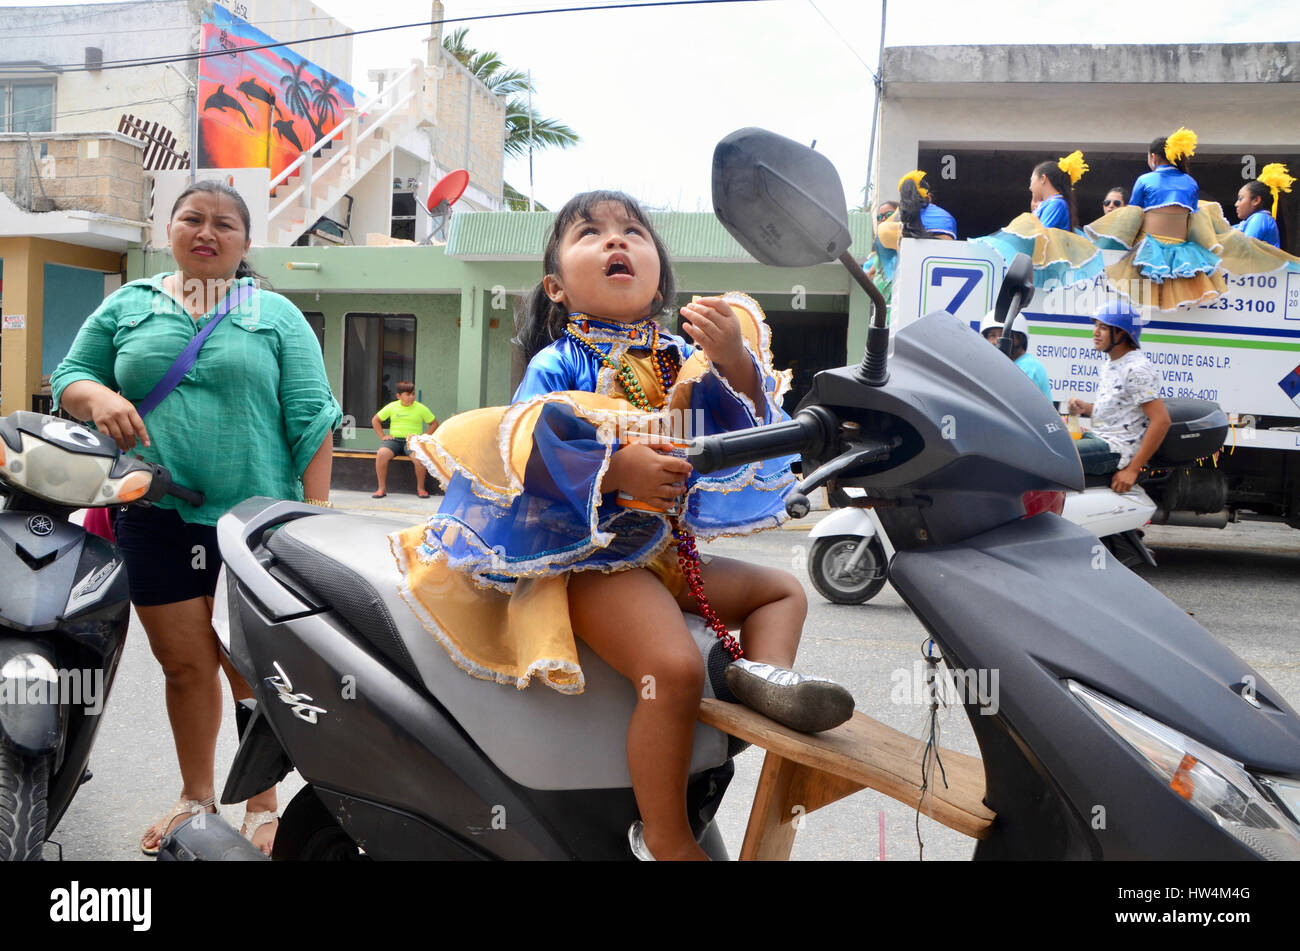 little girl carnival goer sits on scooter moped eating crisps chips isla mujeres - Stock Image